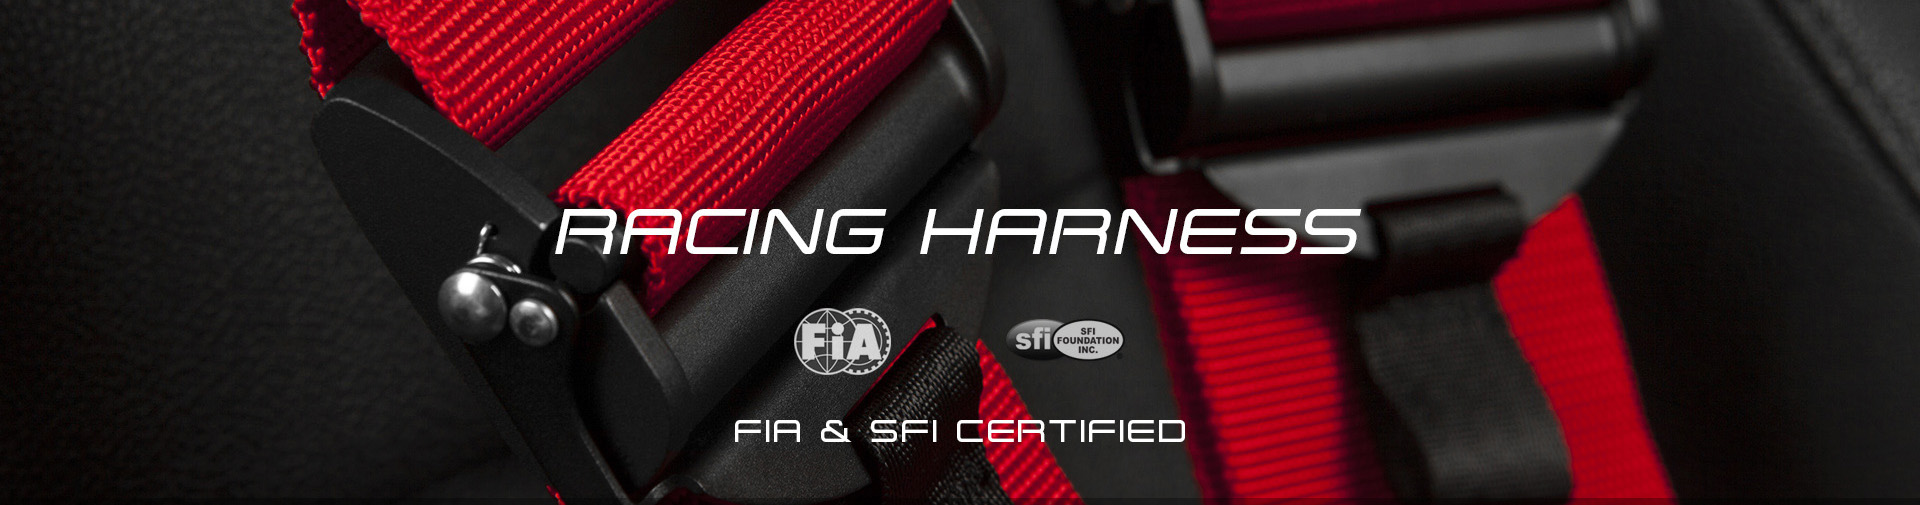 FIA & SFI Racing Harness Banner